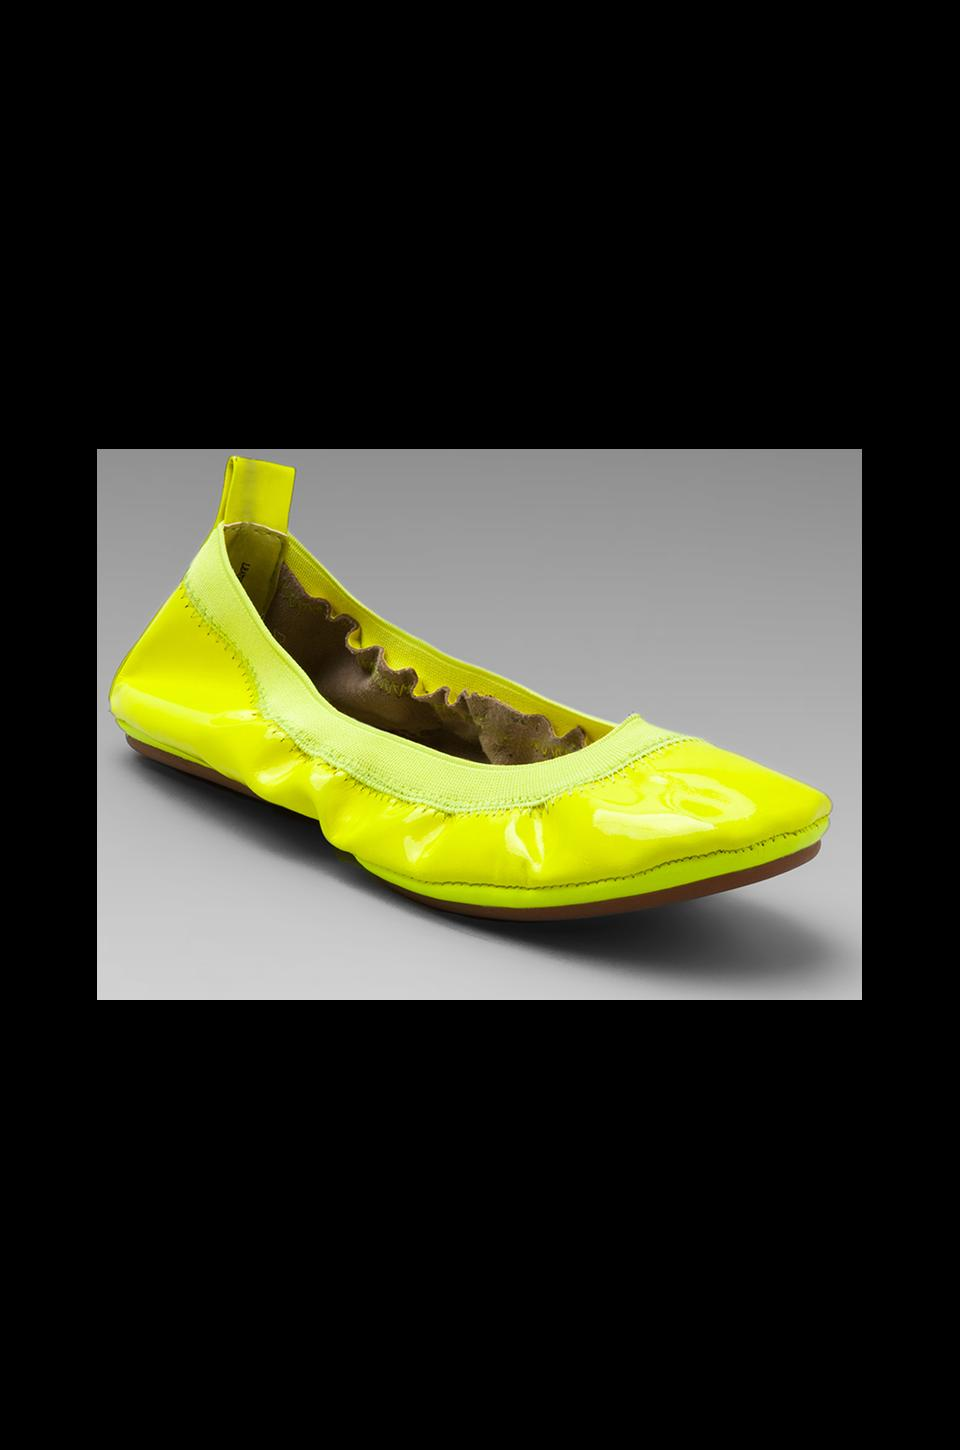 Yosi Samra Patent Leather Flat in Neon Yellow